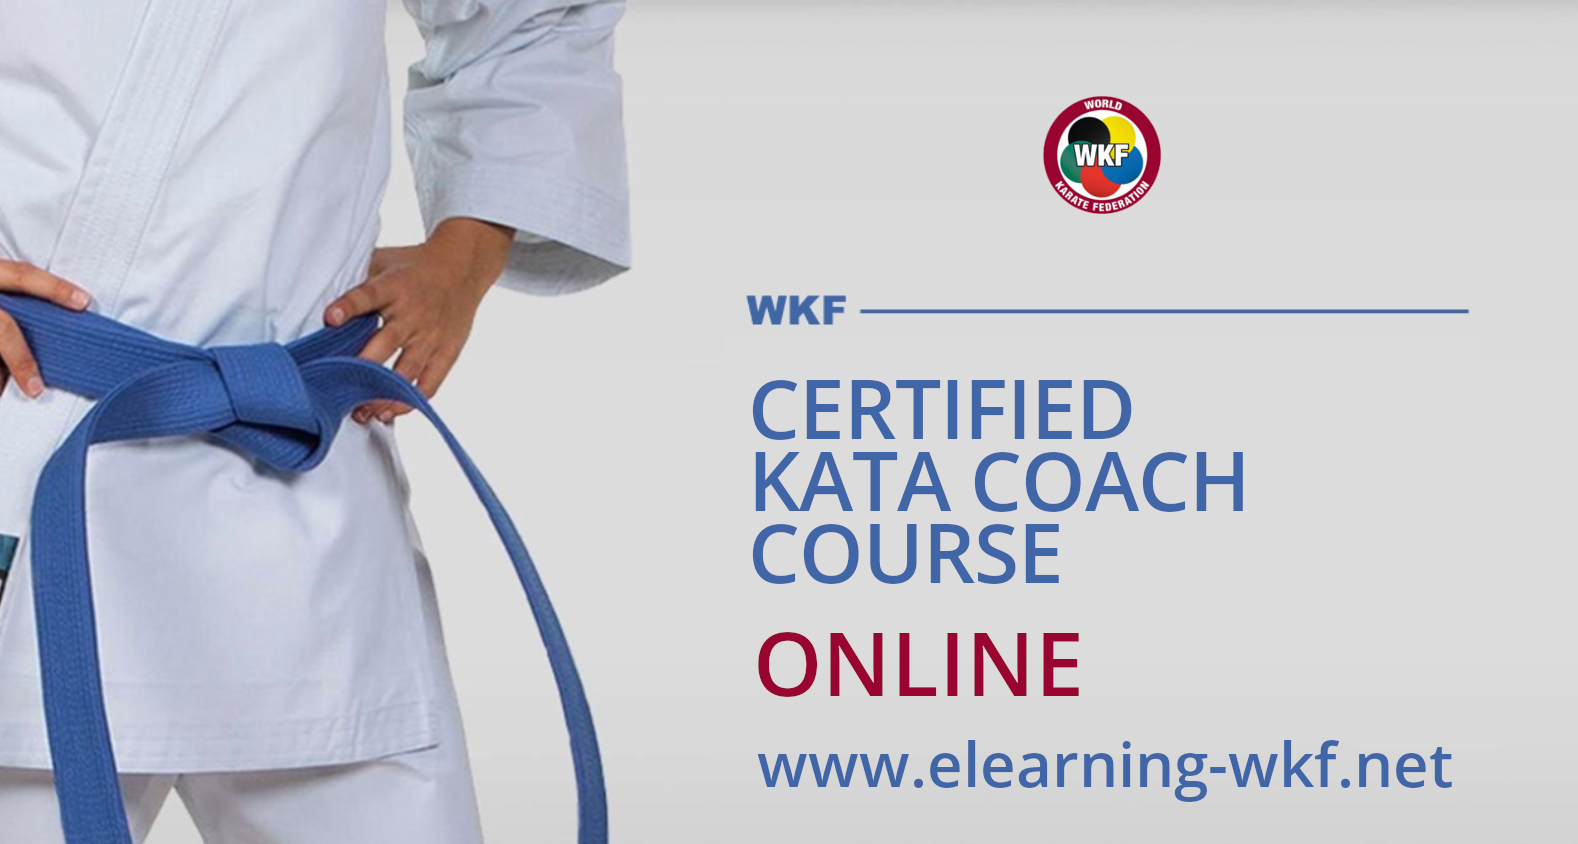 WKF Certified Kata Coach Course